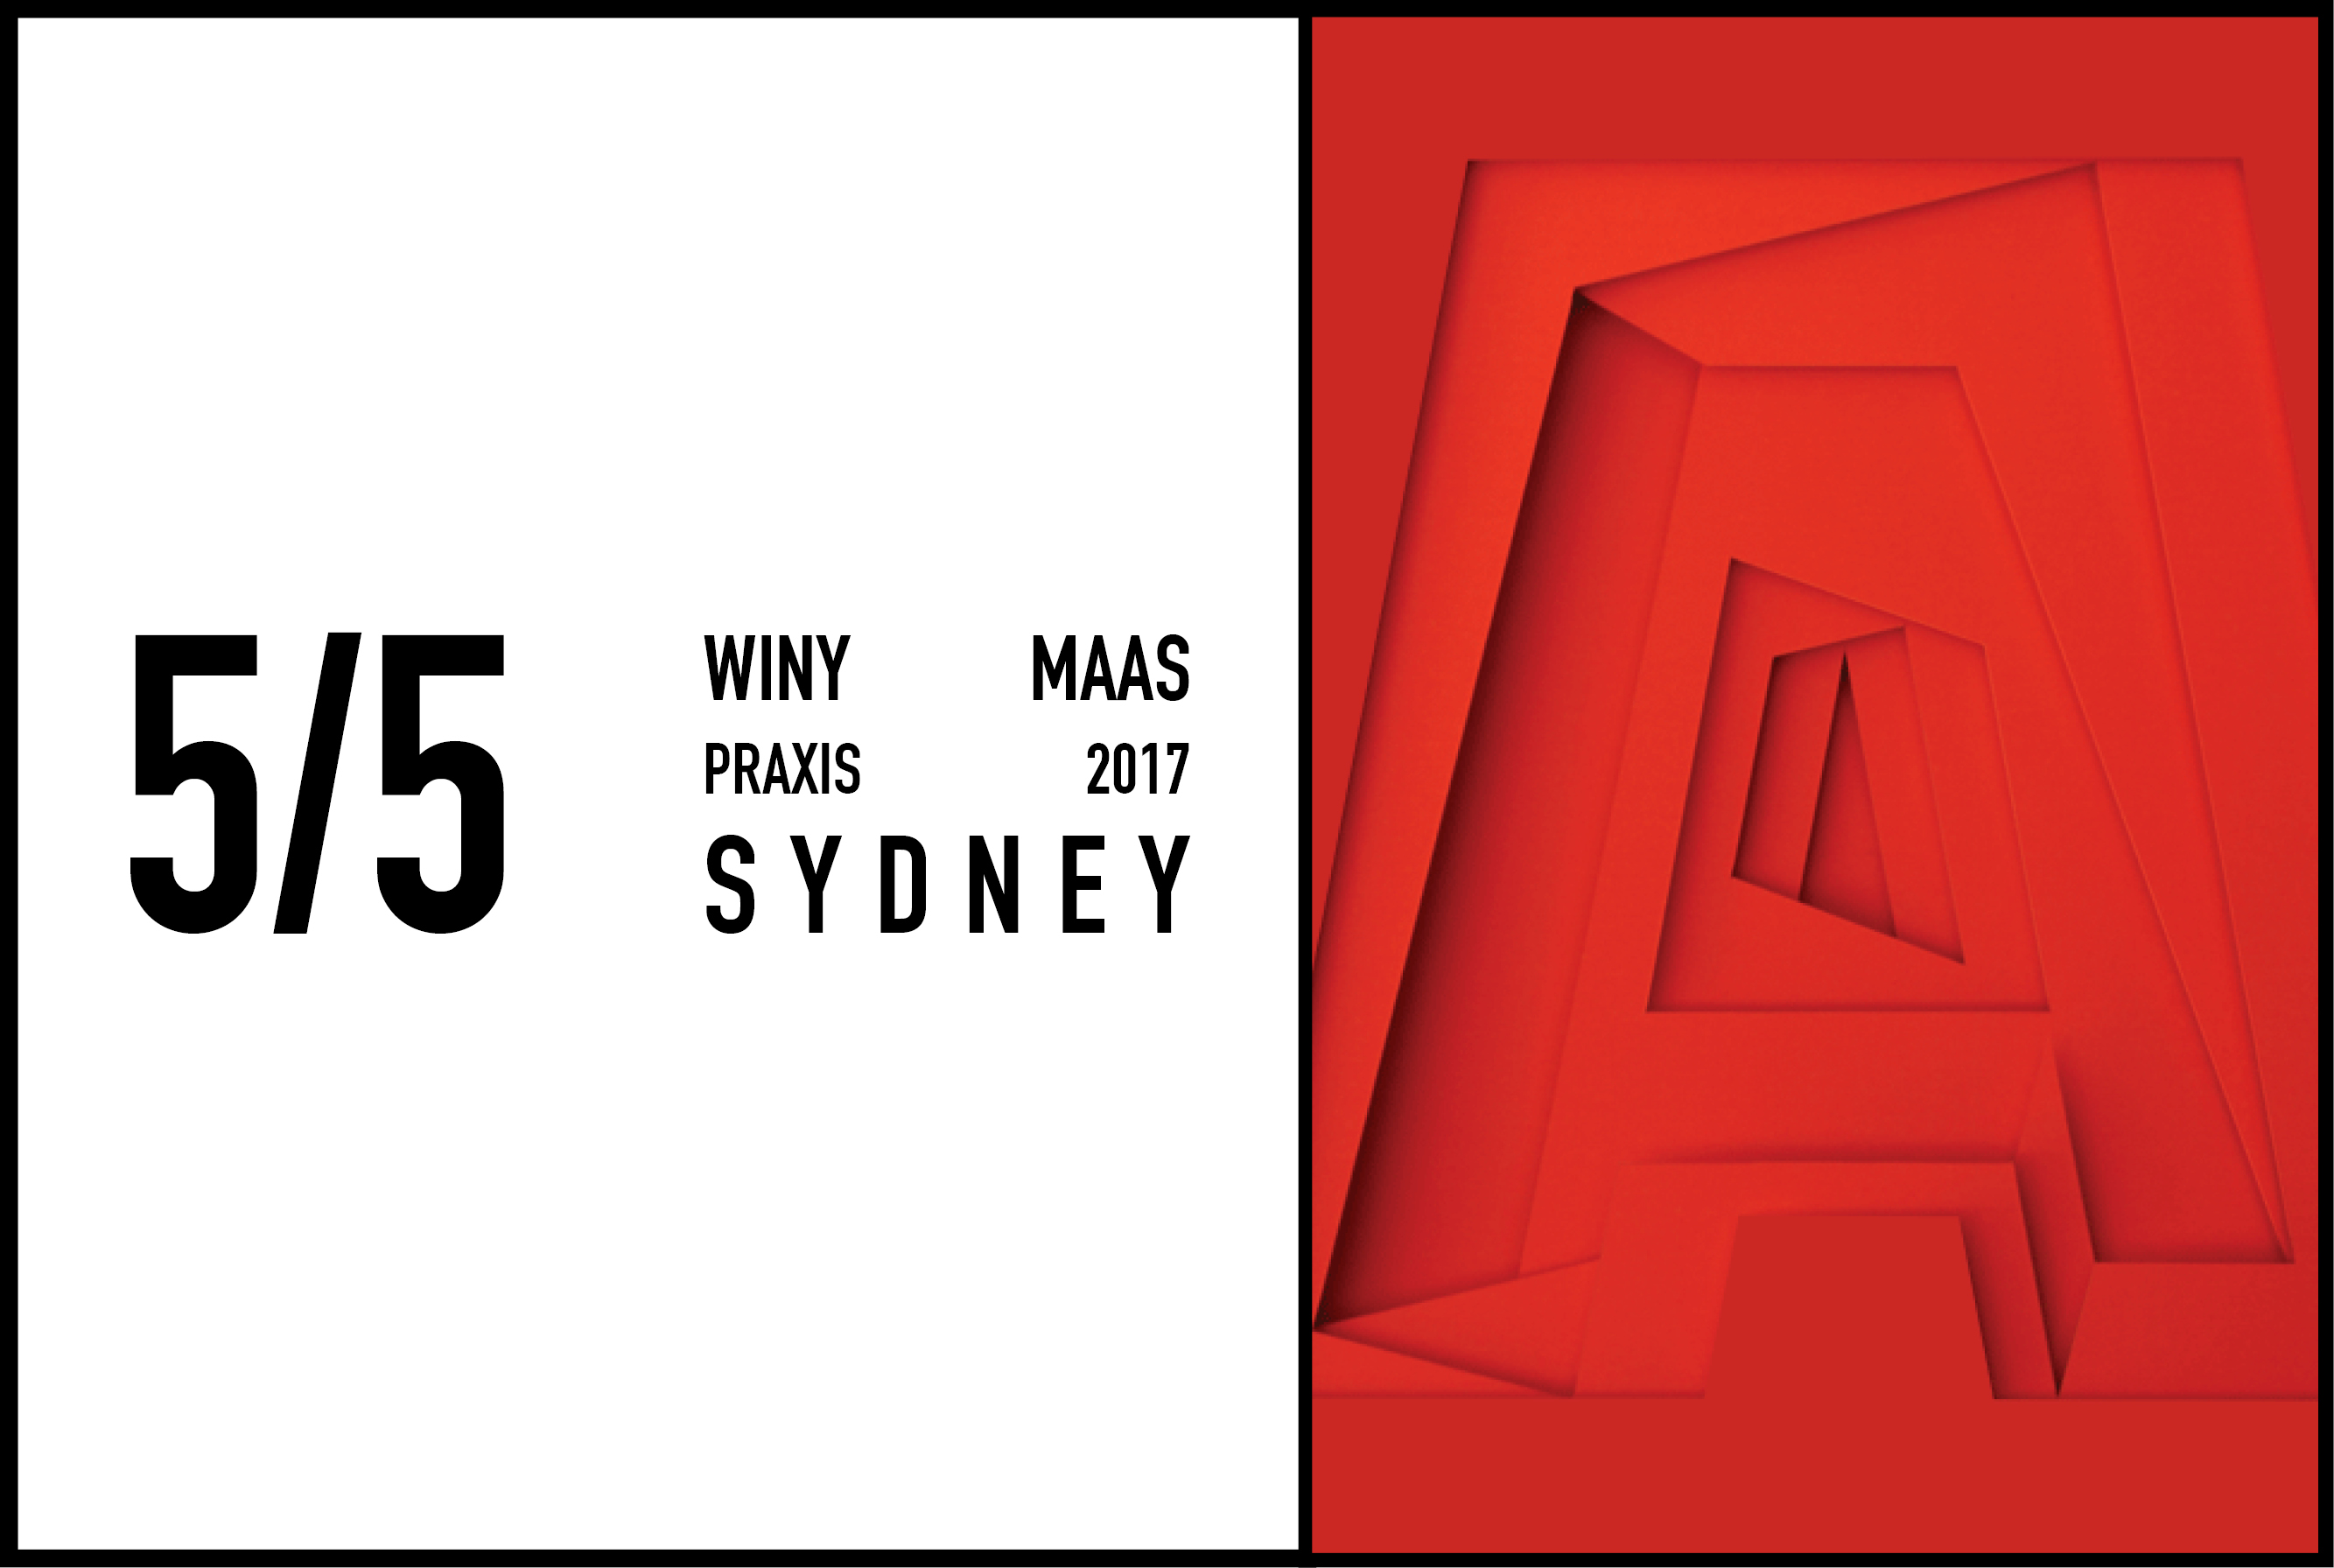 Winy Maas at PRAXIS - The National Architecture Conference Australia, 5 May 2017